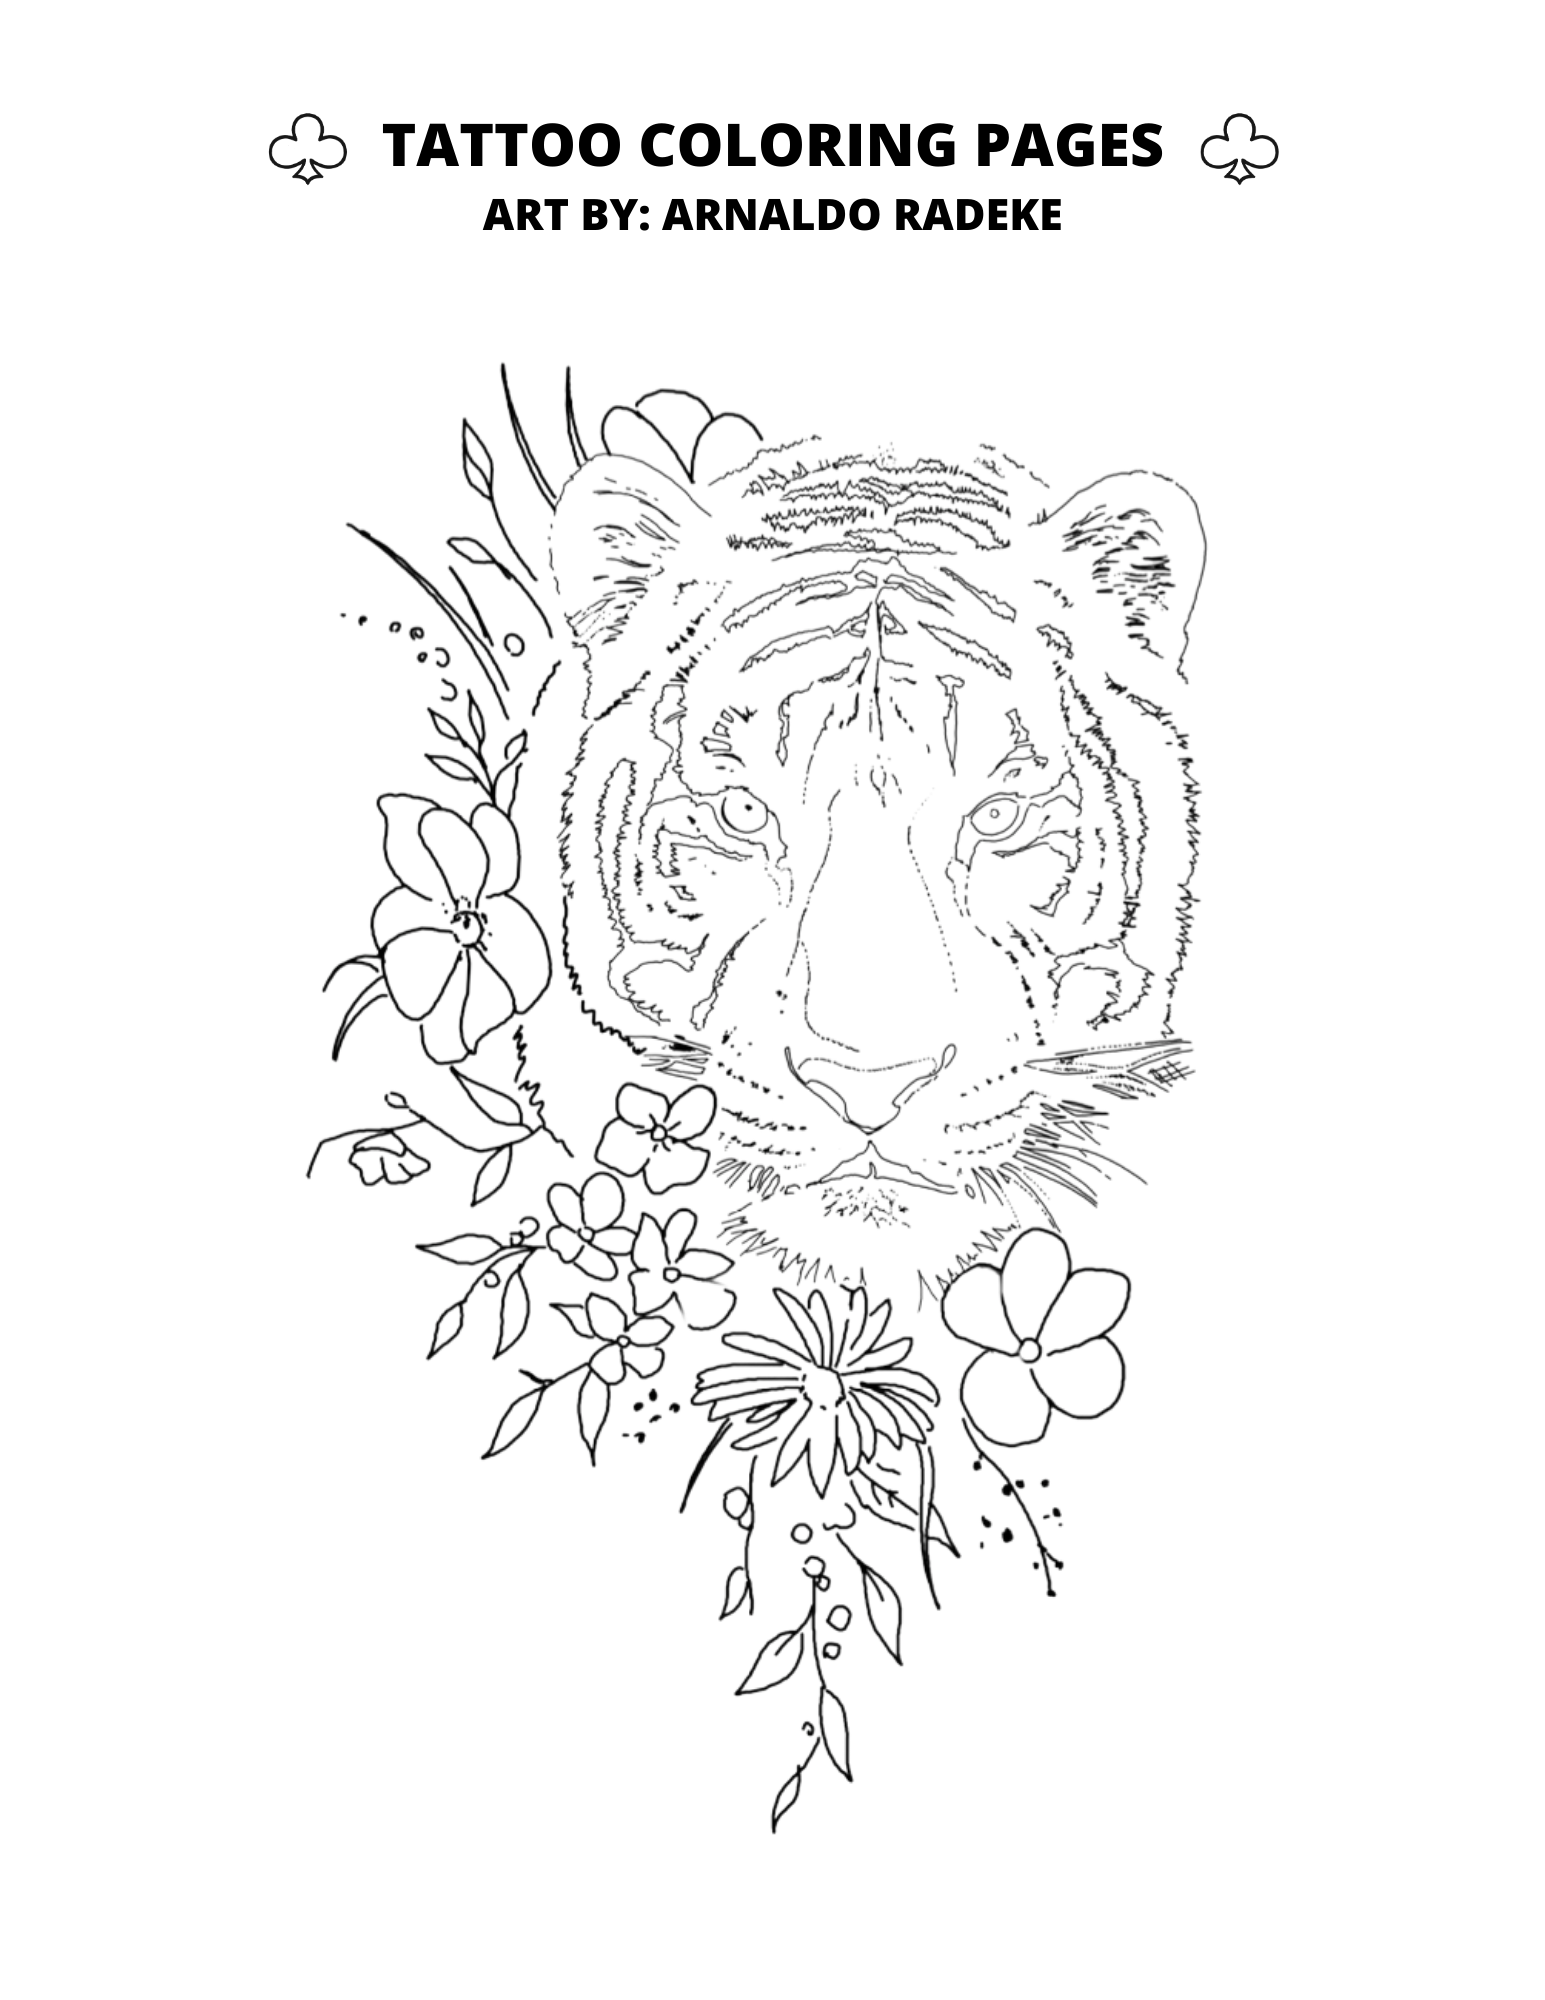 Tattoo Coloring Pages Club Tattoo